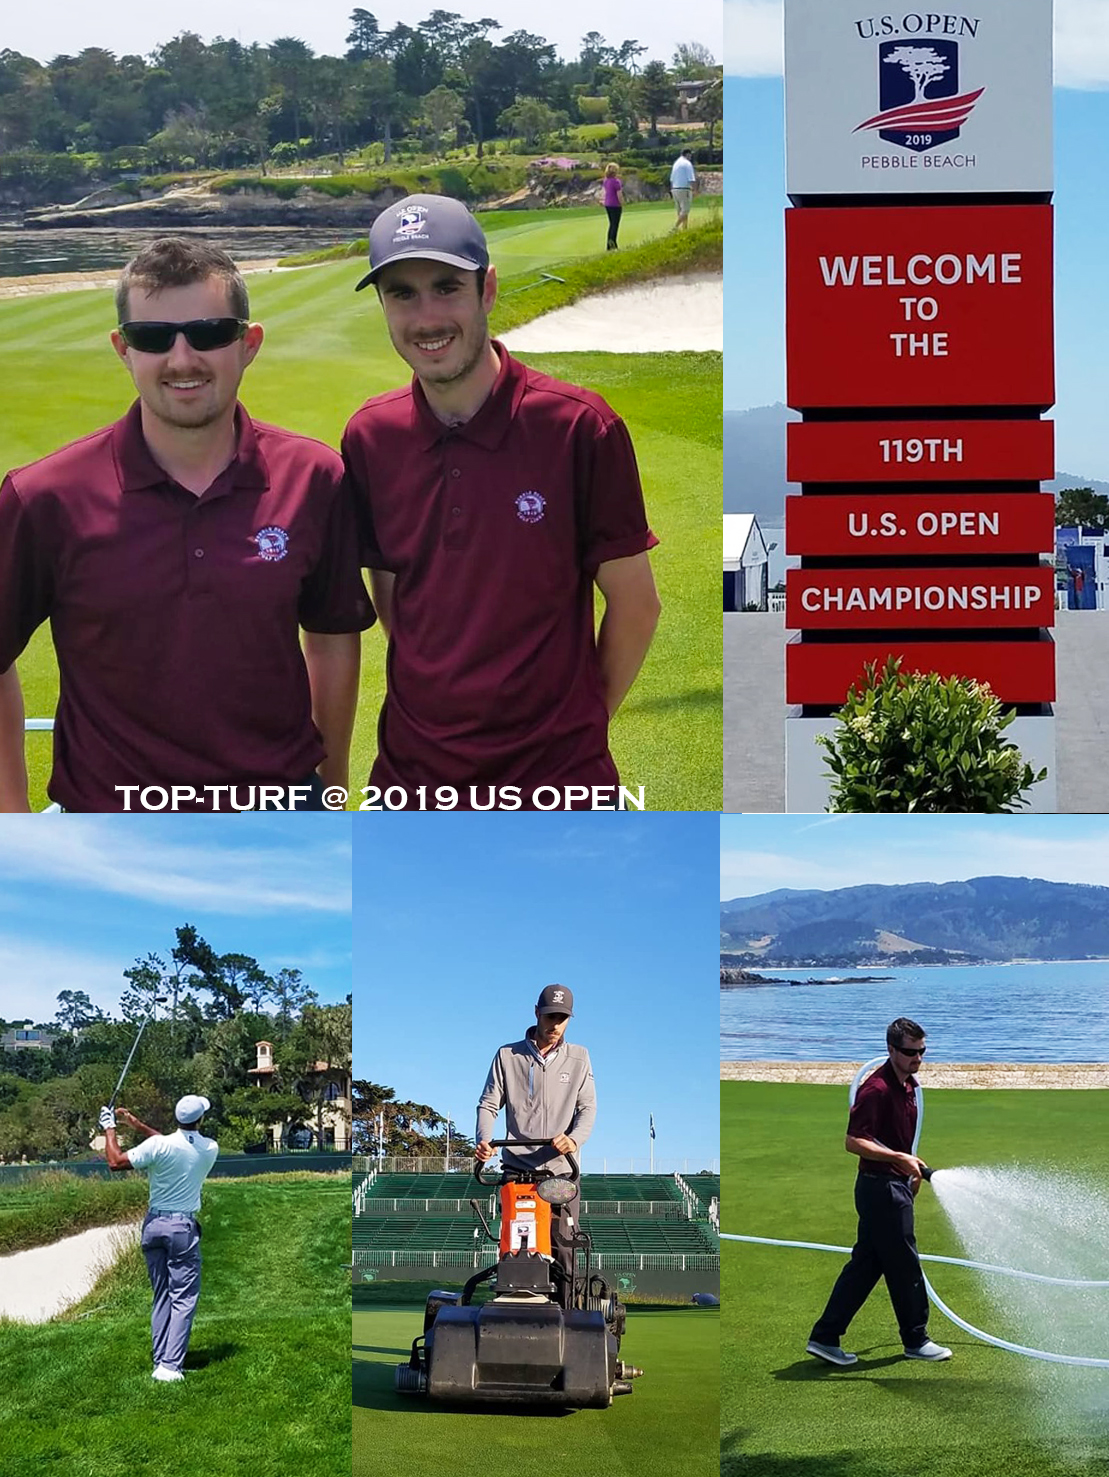 TOP-Turf Interns Volunteering at 2019 U.S. Open